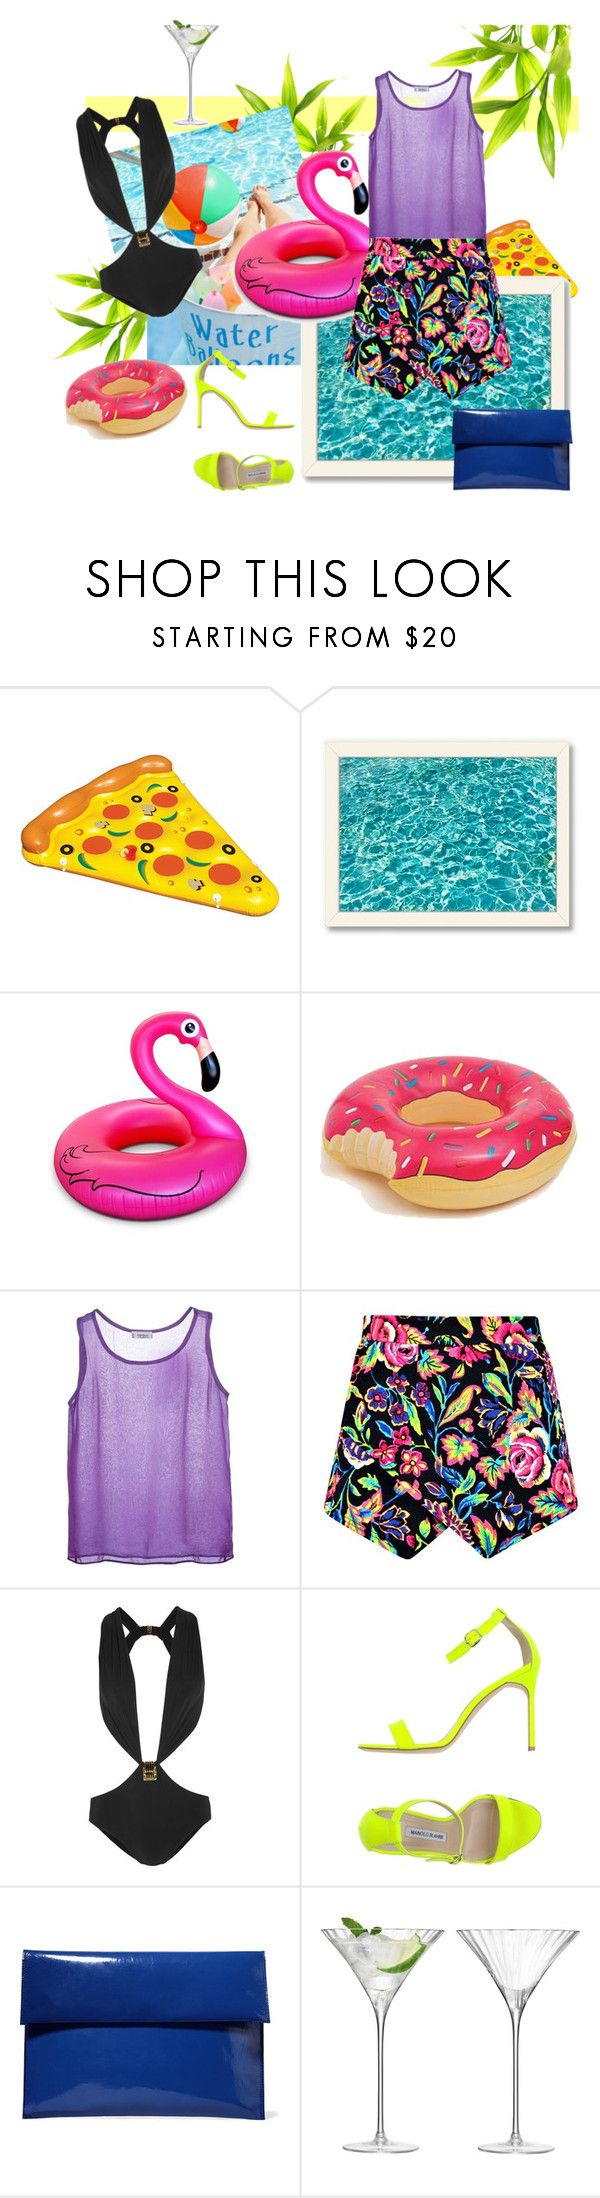 """""""Pool party"""" by closertocris ❤ liked on Polyvore featuring moda, Americanflat, Big Mouth, Yves Saint Laurent, Boohoo, Gucci, Manolo Blahnik, Marni, LSA International y women's clothing"""